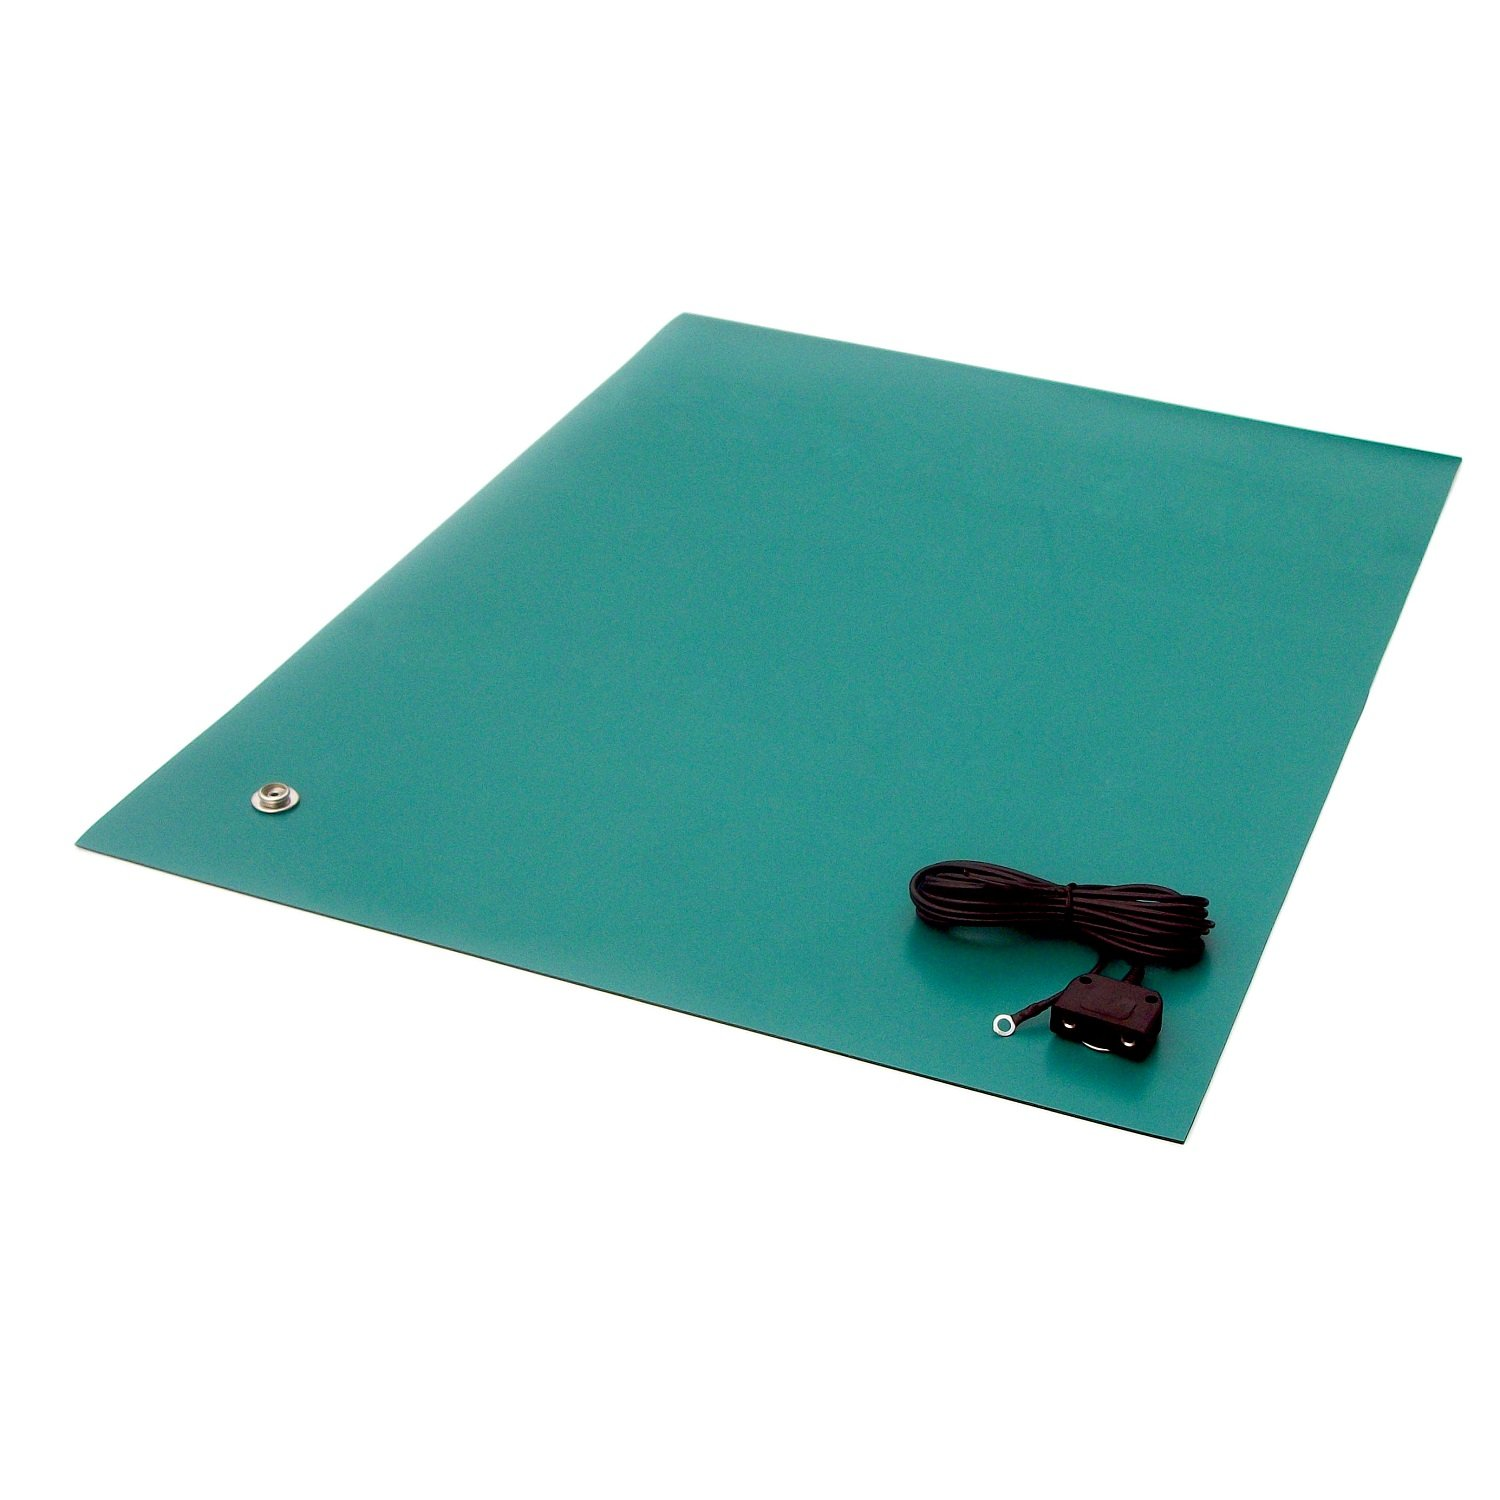 Green StaticTek MT4500 2-Layer Conductive Table Cut Matting Rubber Table Mats for ESD Work Surface ESD Mats including Hardware 24x36 TT/_MT2436GN